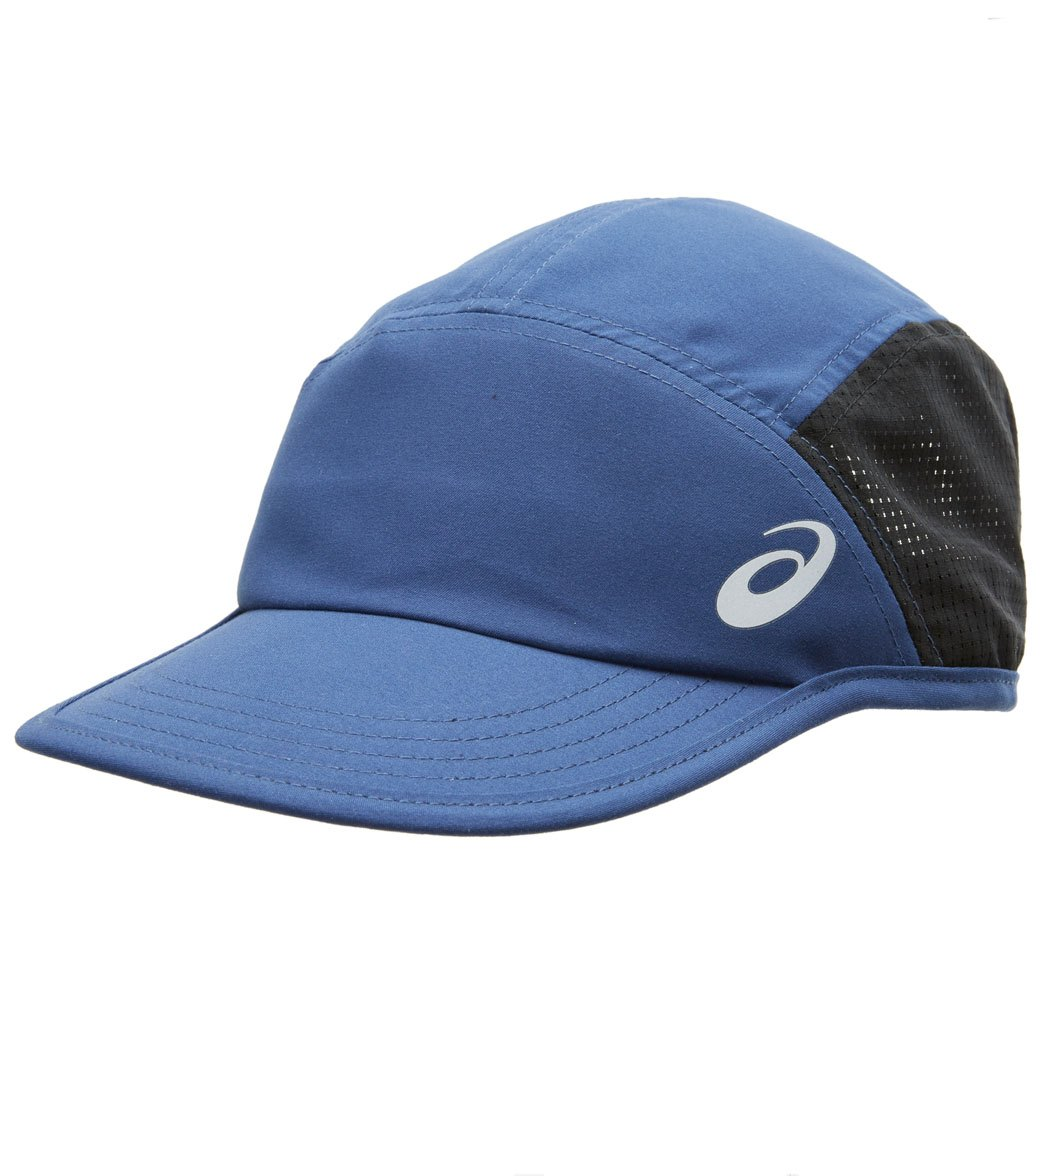 Asics Woven Cap at SwimOutlet.com 22733754d22